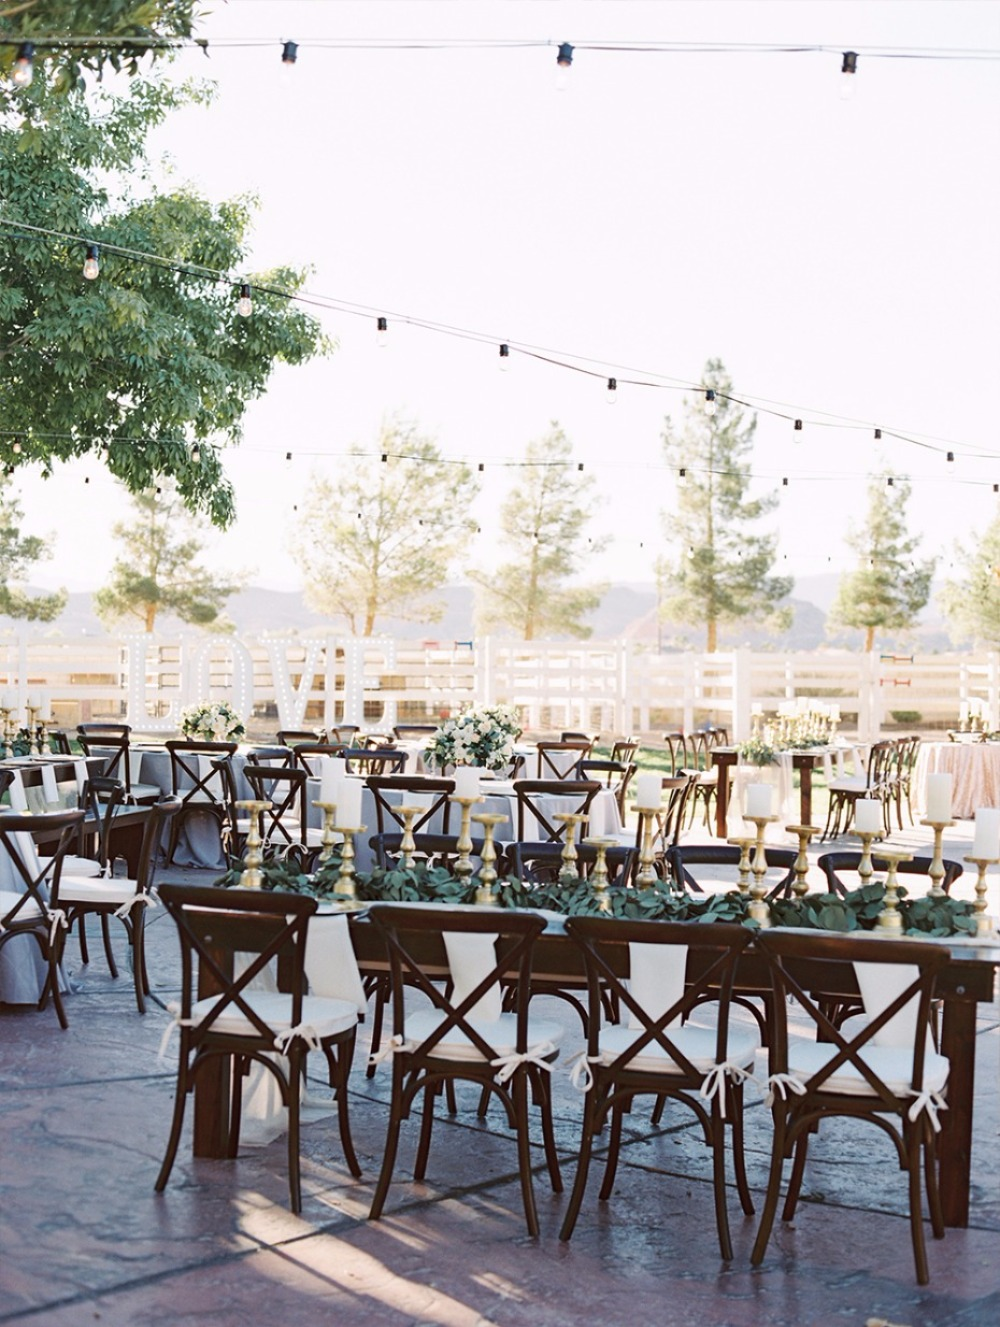 Trending - 5 Off The Beaten Path Las Vegas Wedding Venues